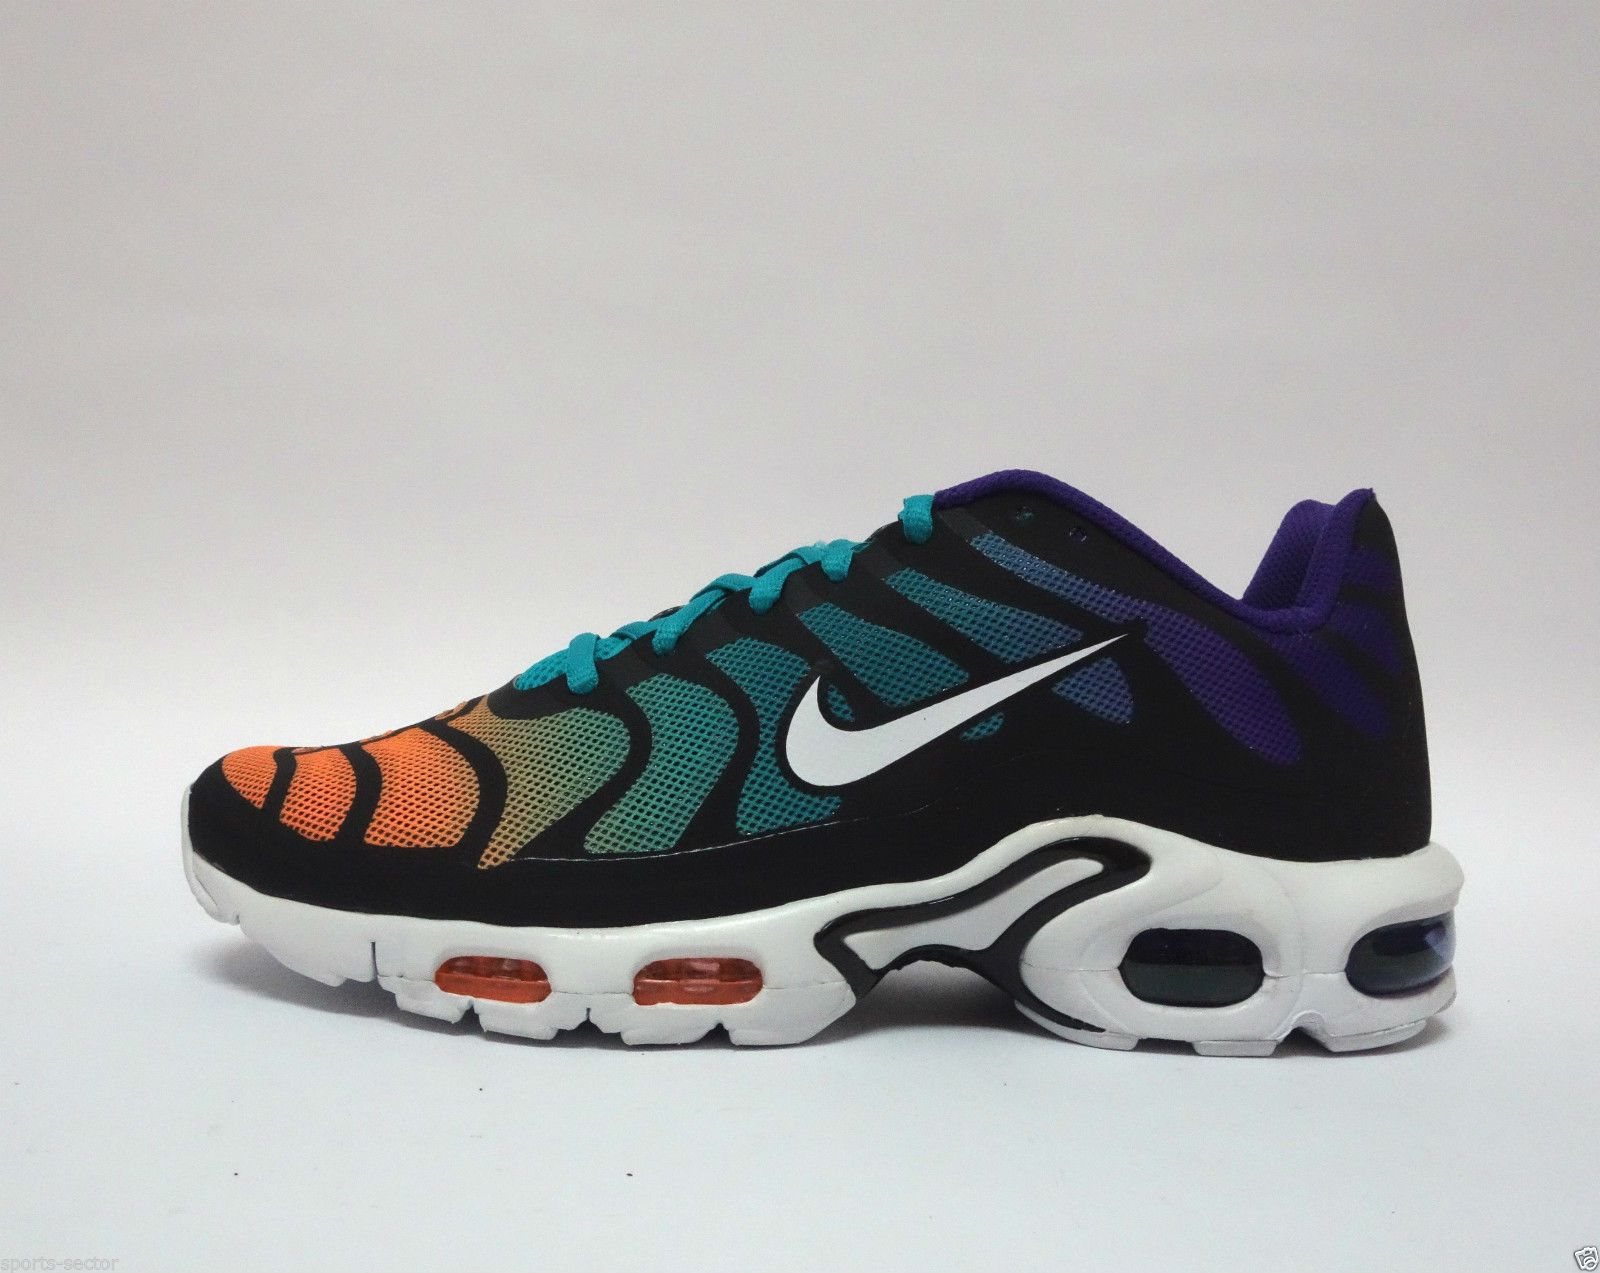 966463cd7f Nike Air Max Plus Hyperfuse TN1 Tuned Mens Trainers Shoes Turbo Green/White  | eBay